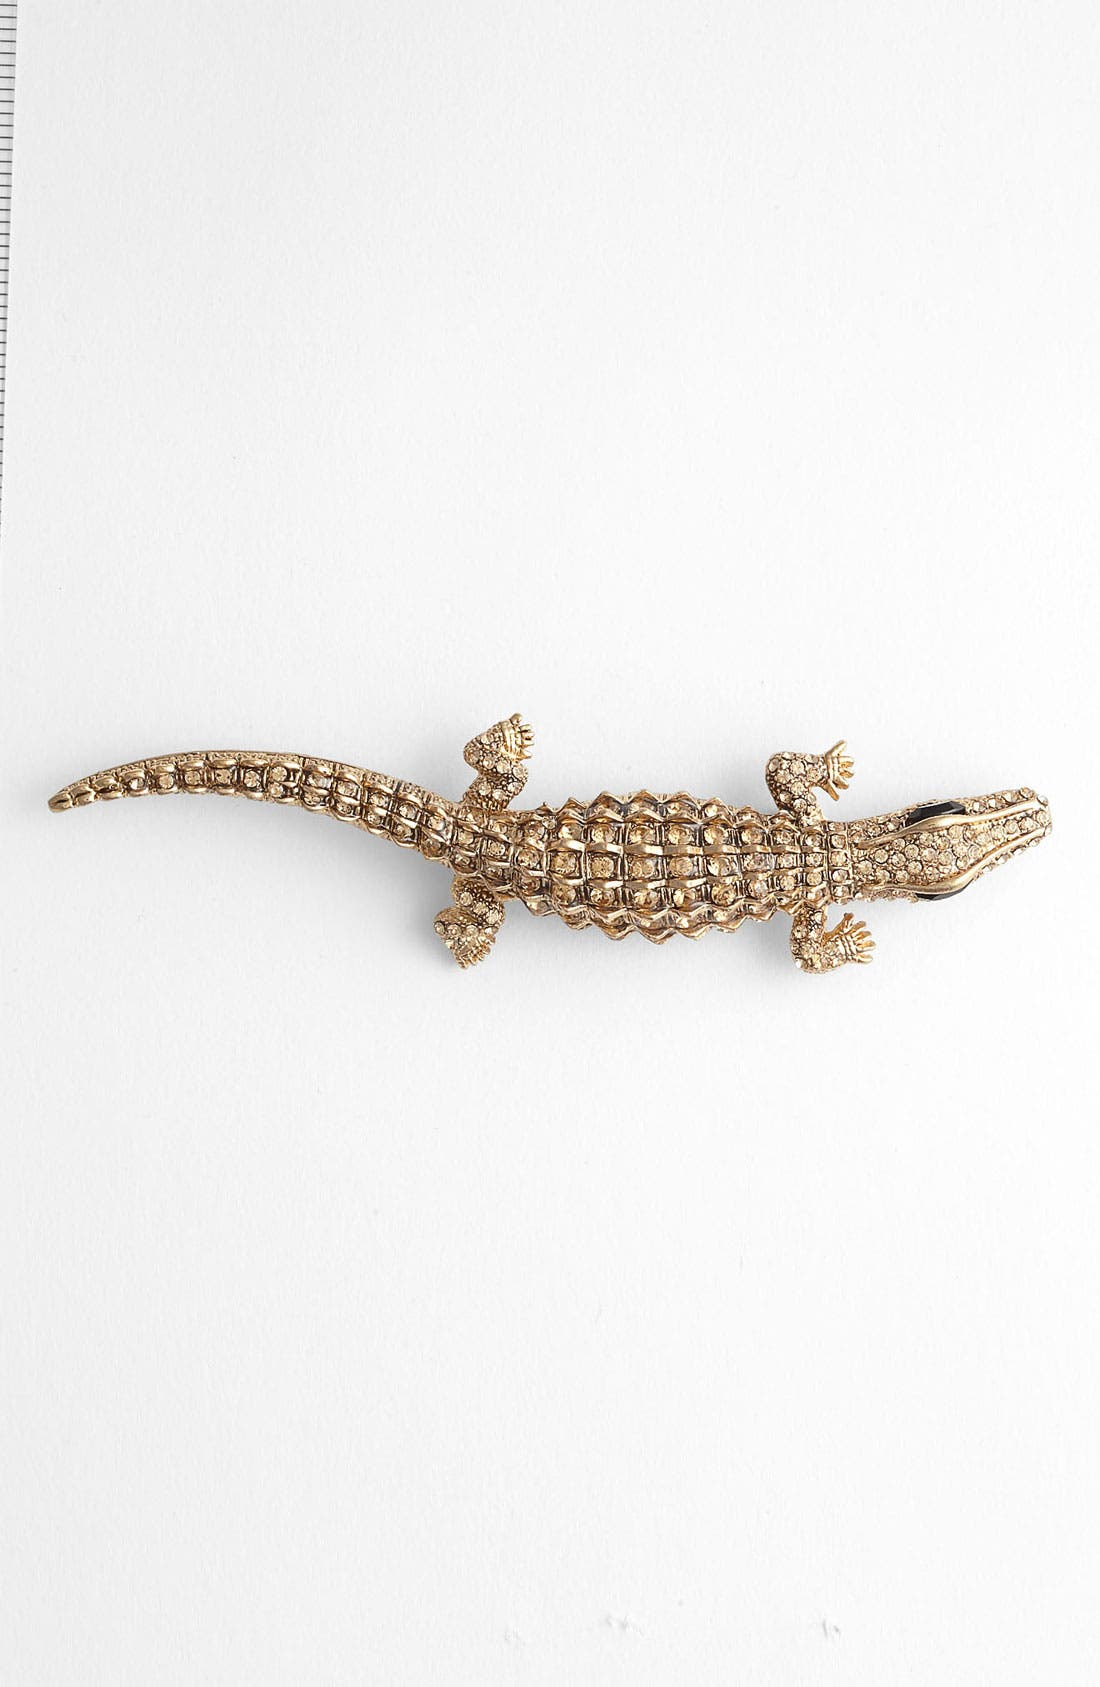 Main Image - Tasha 'Critters' Alligator Brooch